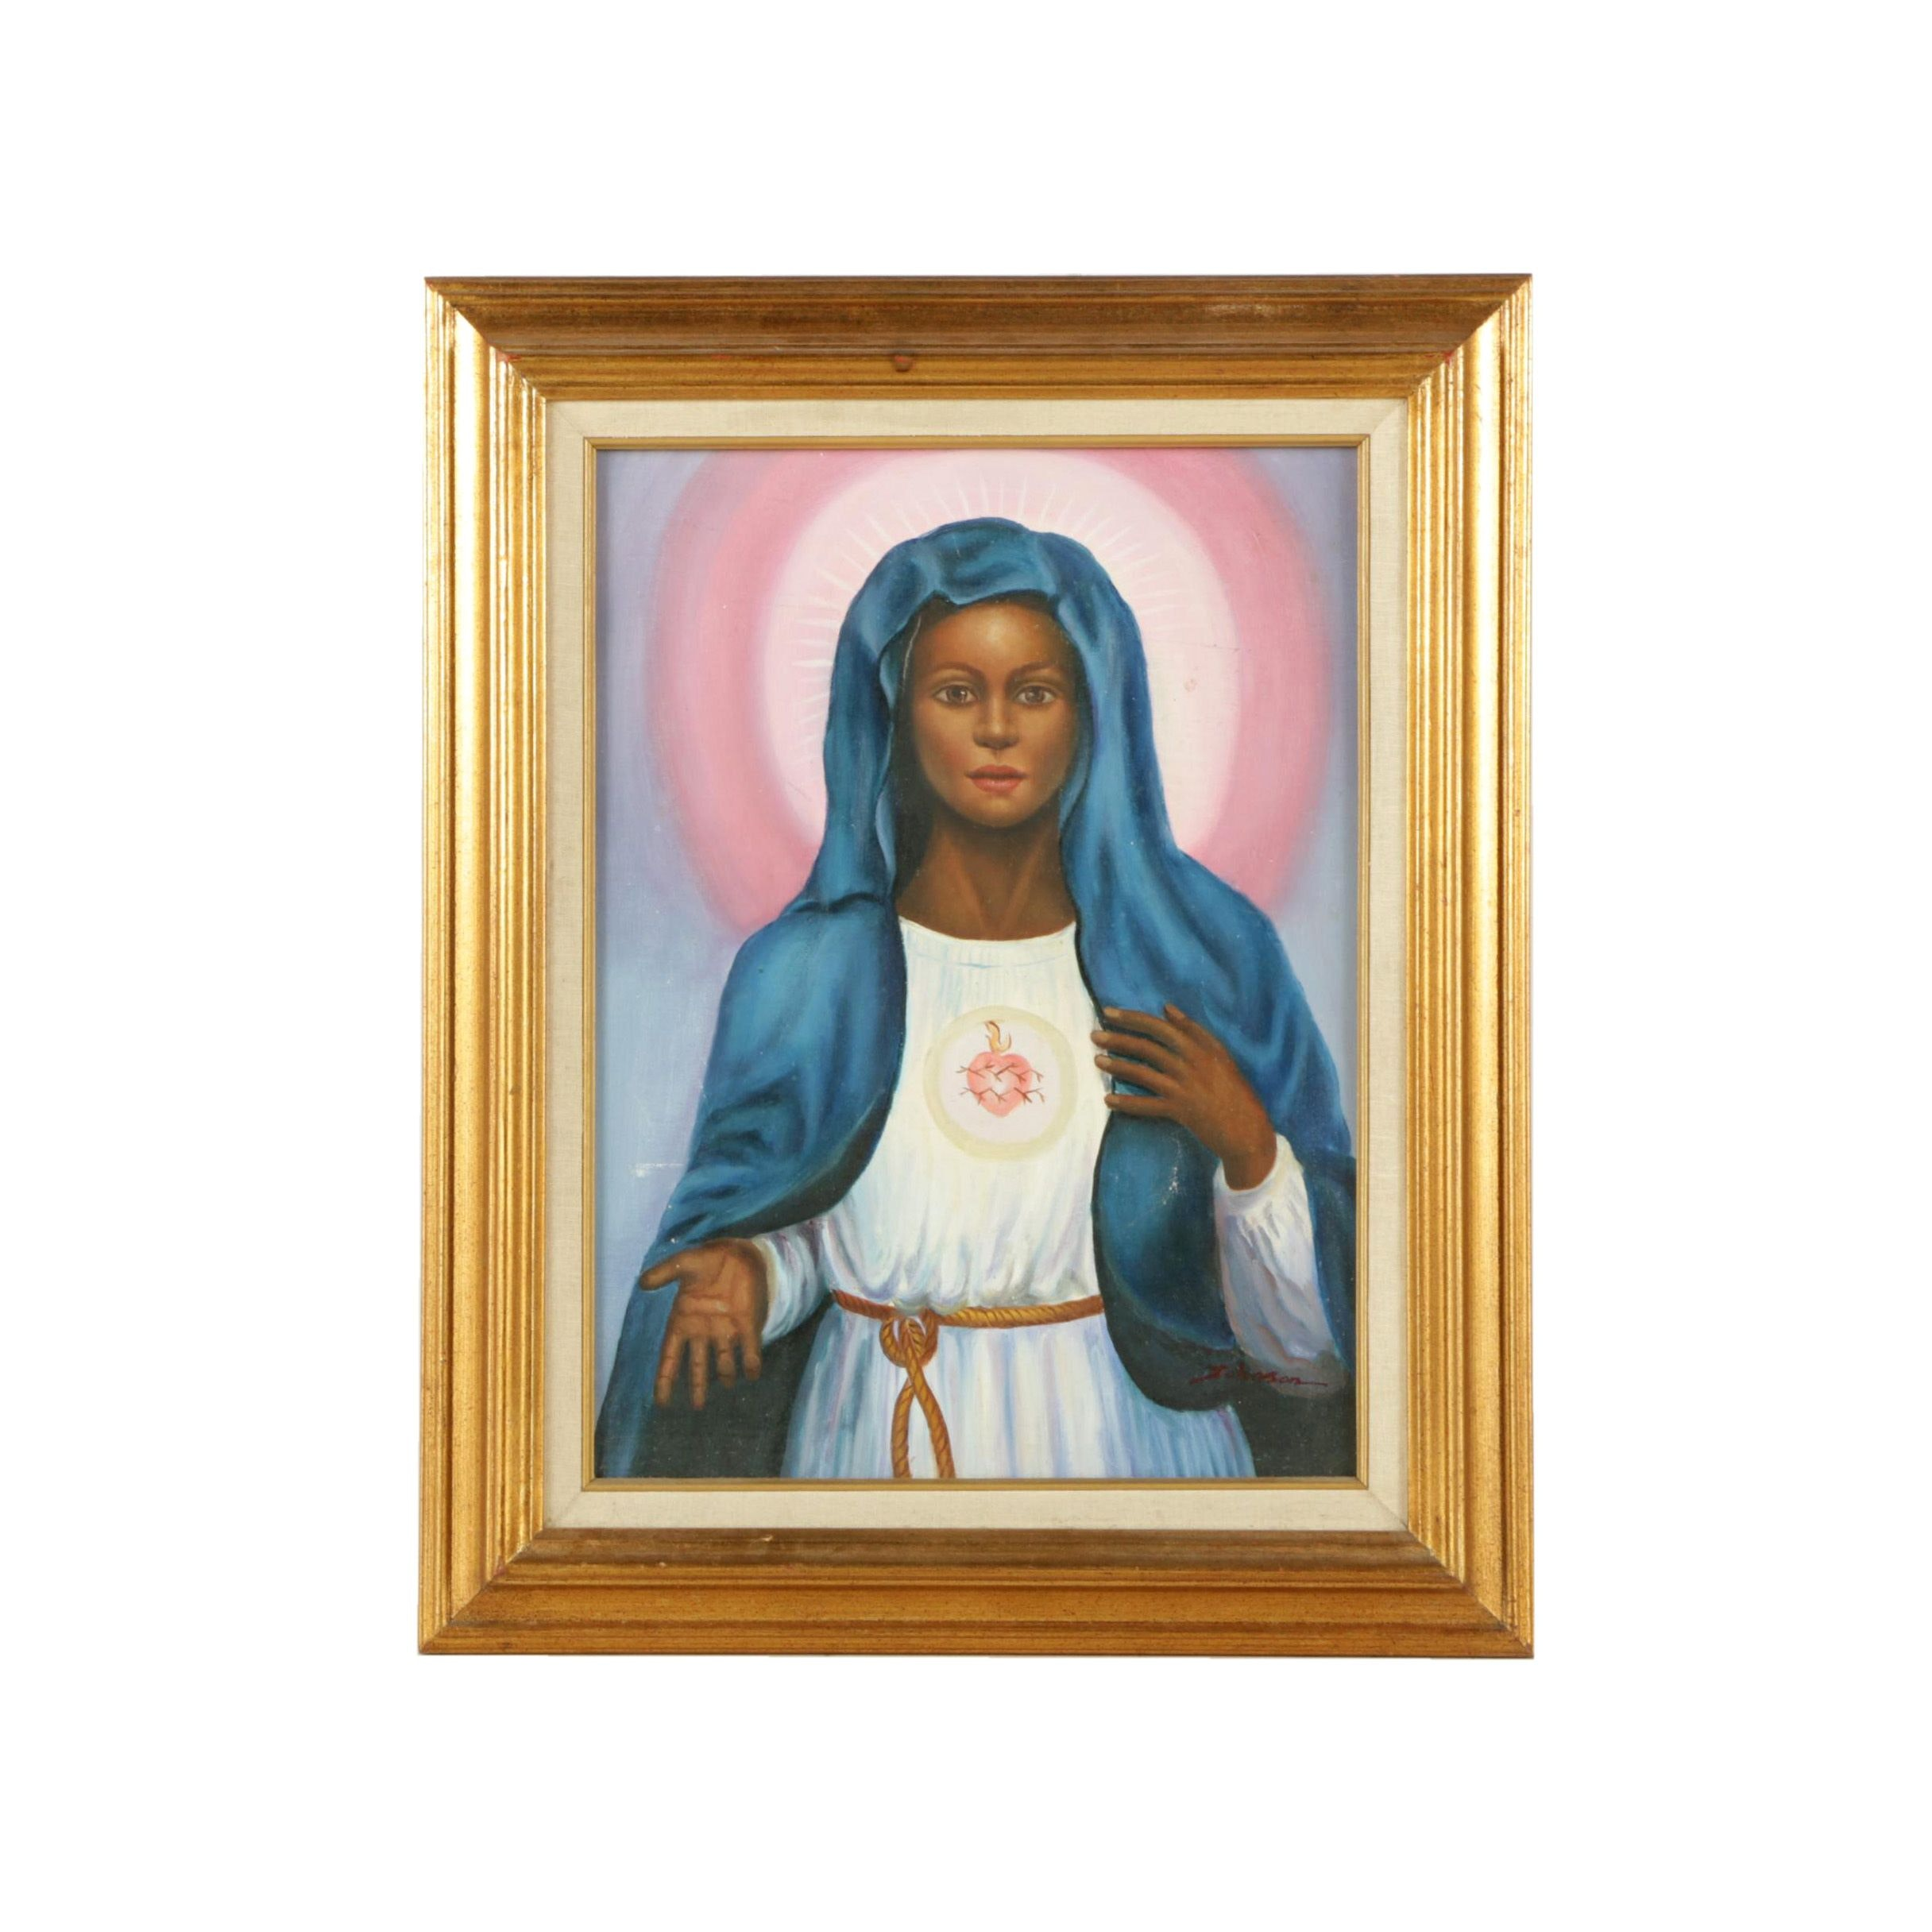 Oil Painting on Canvas Depicting Mary Mother of Jesus